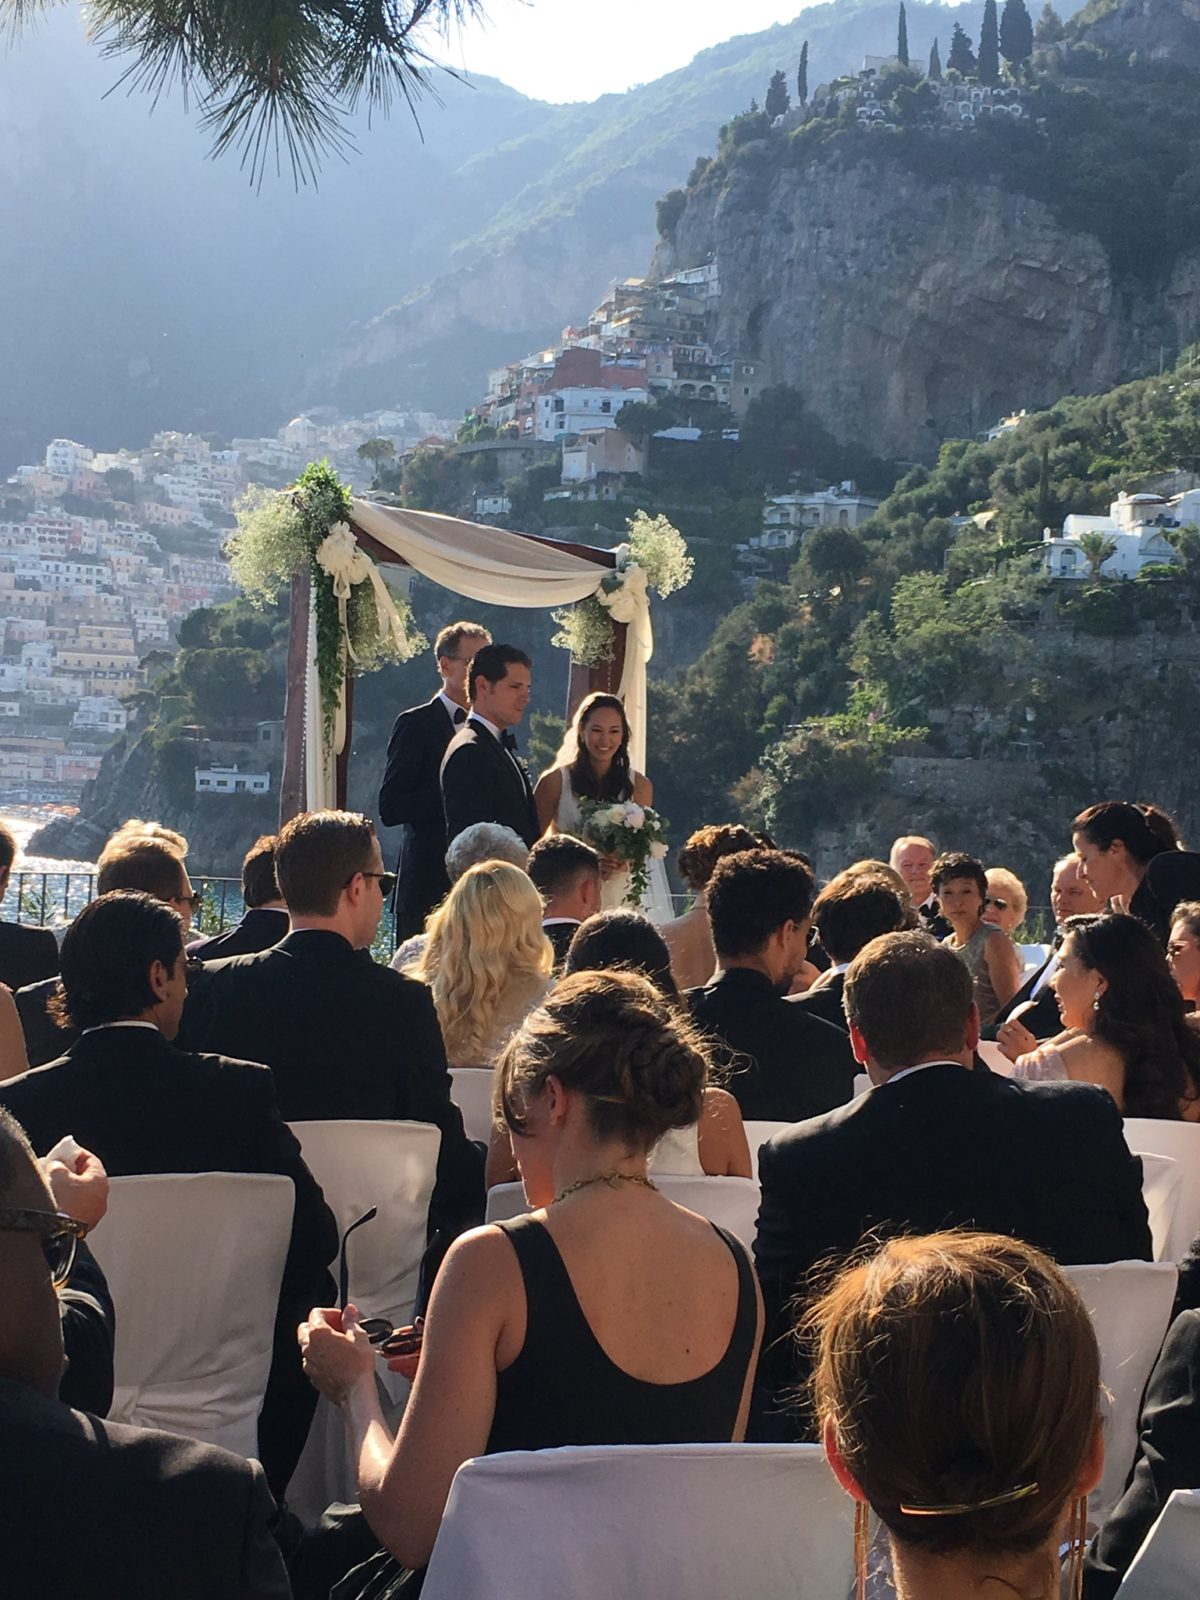 Nathalie and Benjamin Wedding in Positano Italy (4)